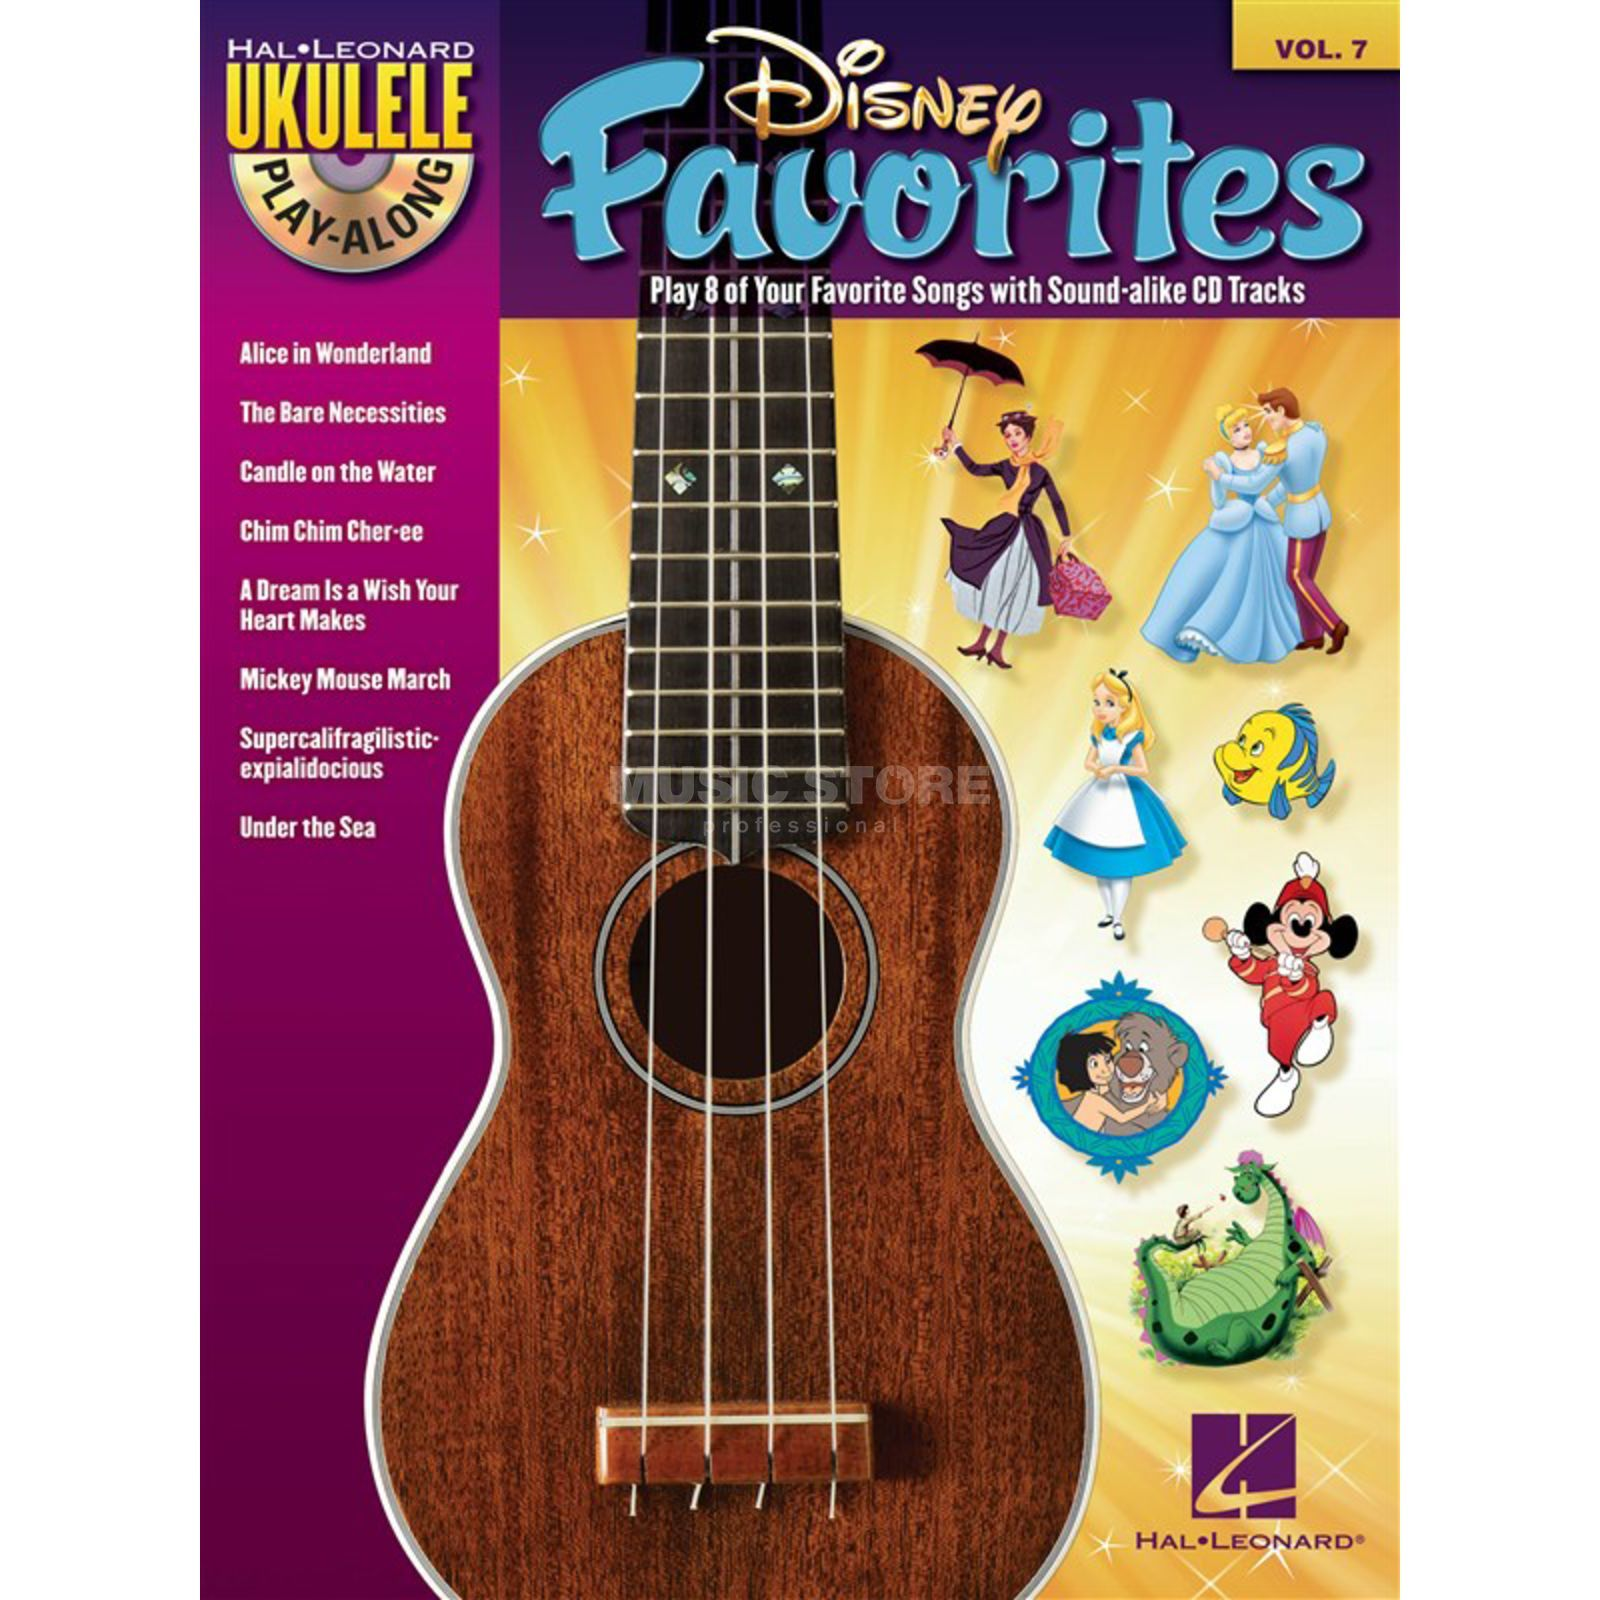 Hal Leonard Ukulele Play-Along: Disney Vol. 7, Ukulele mit CD Produktbild